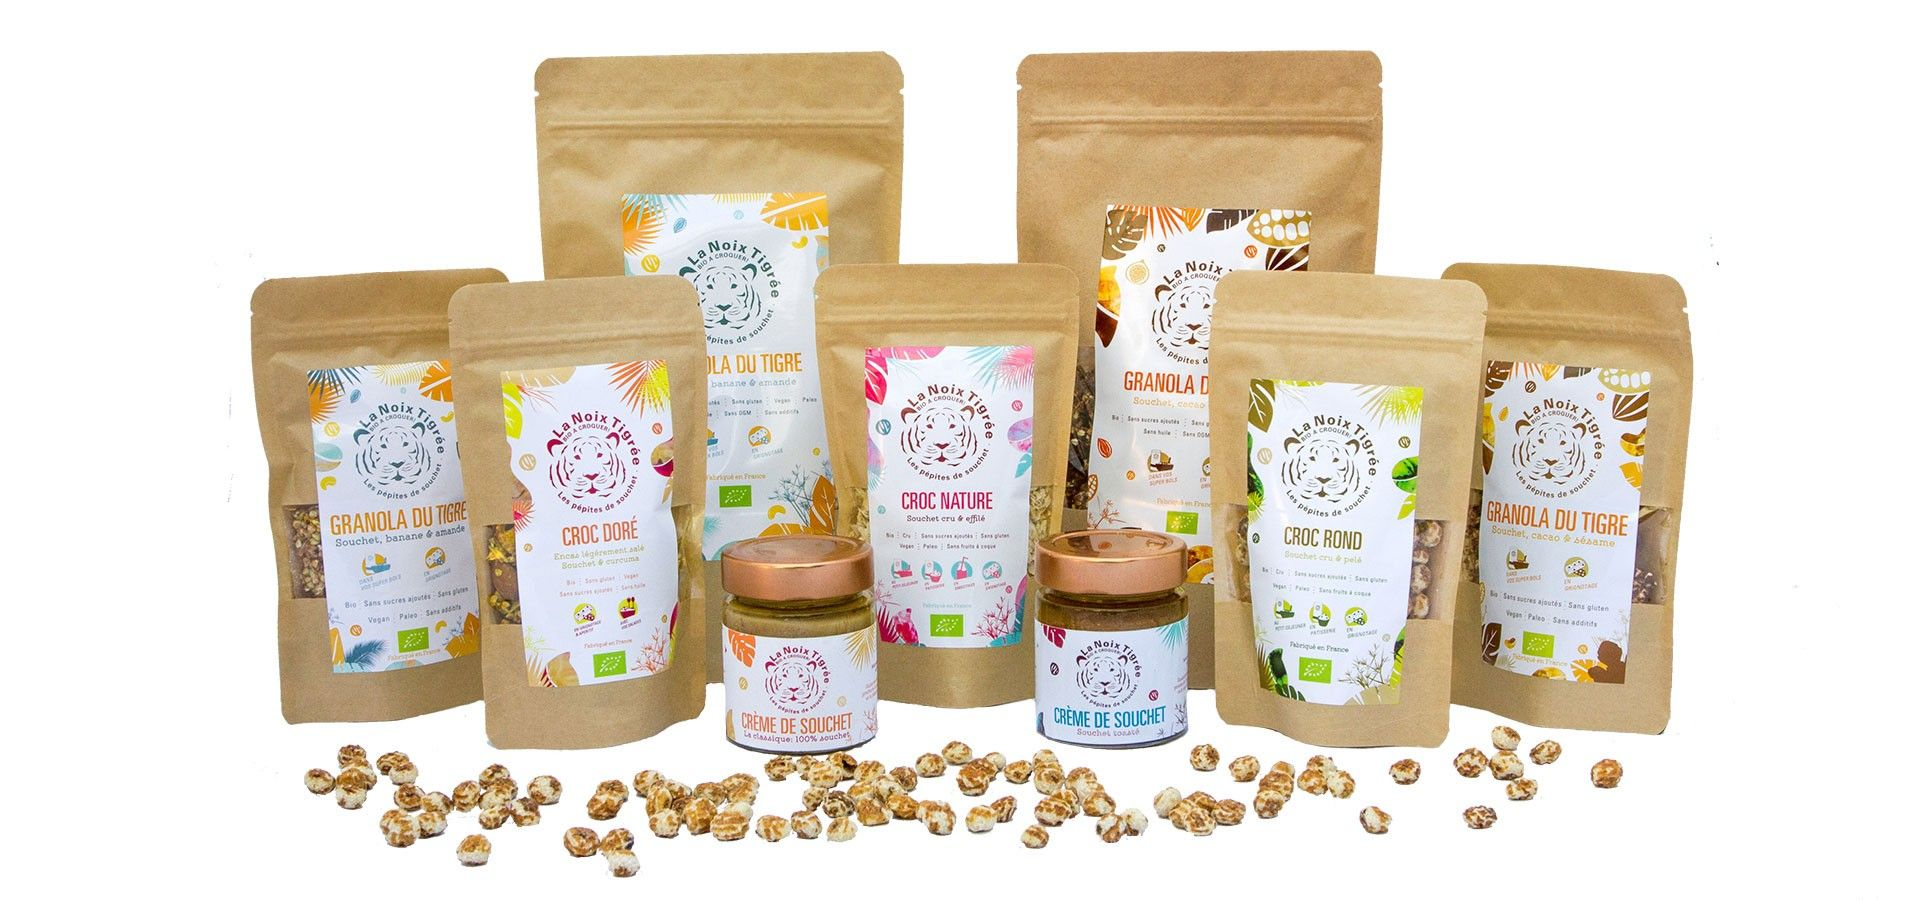 Our full tiger nut range